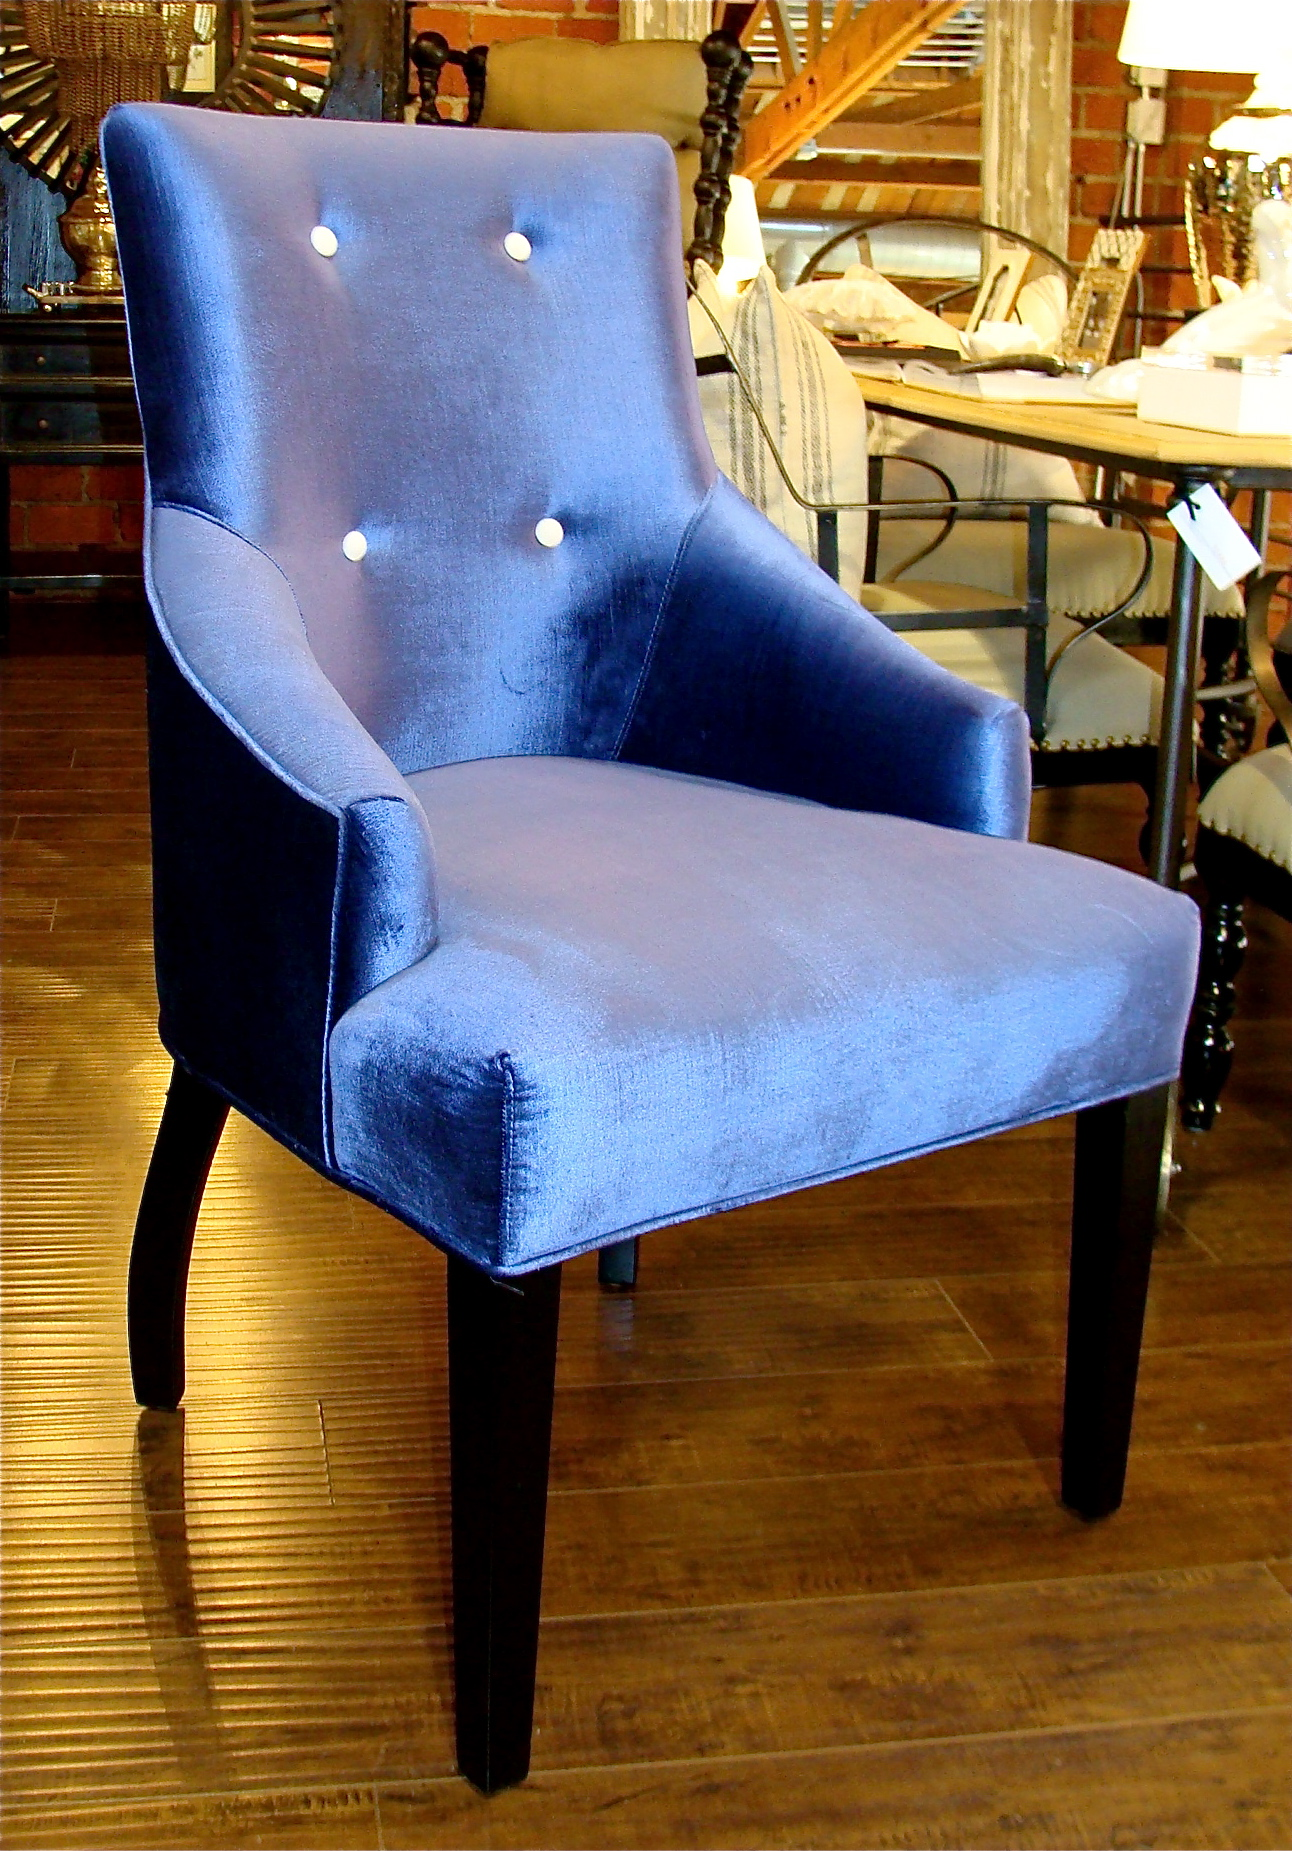 Blue Velvet Chair Blue Velvet Dining Chair With White Buttons 22 Bond St